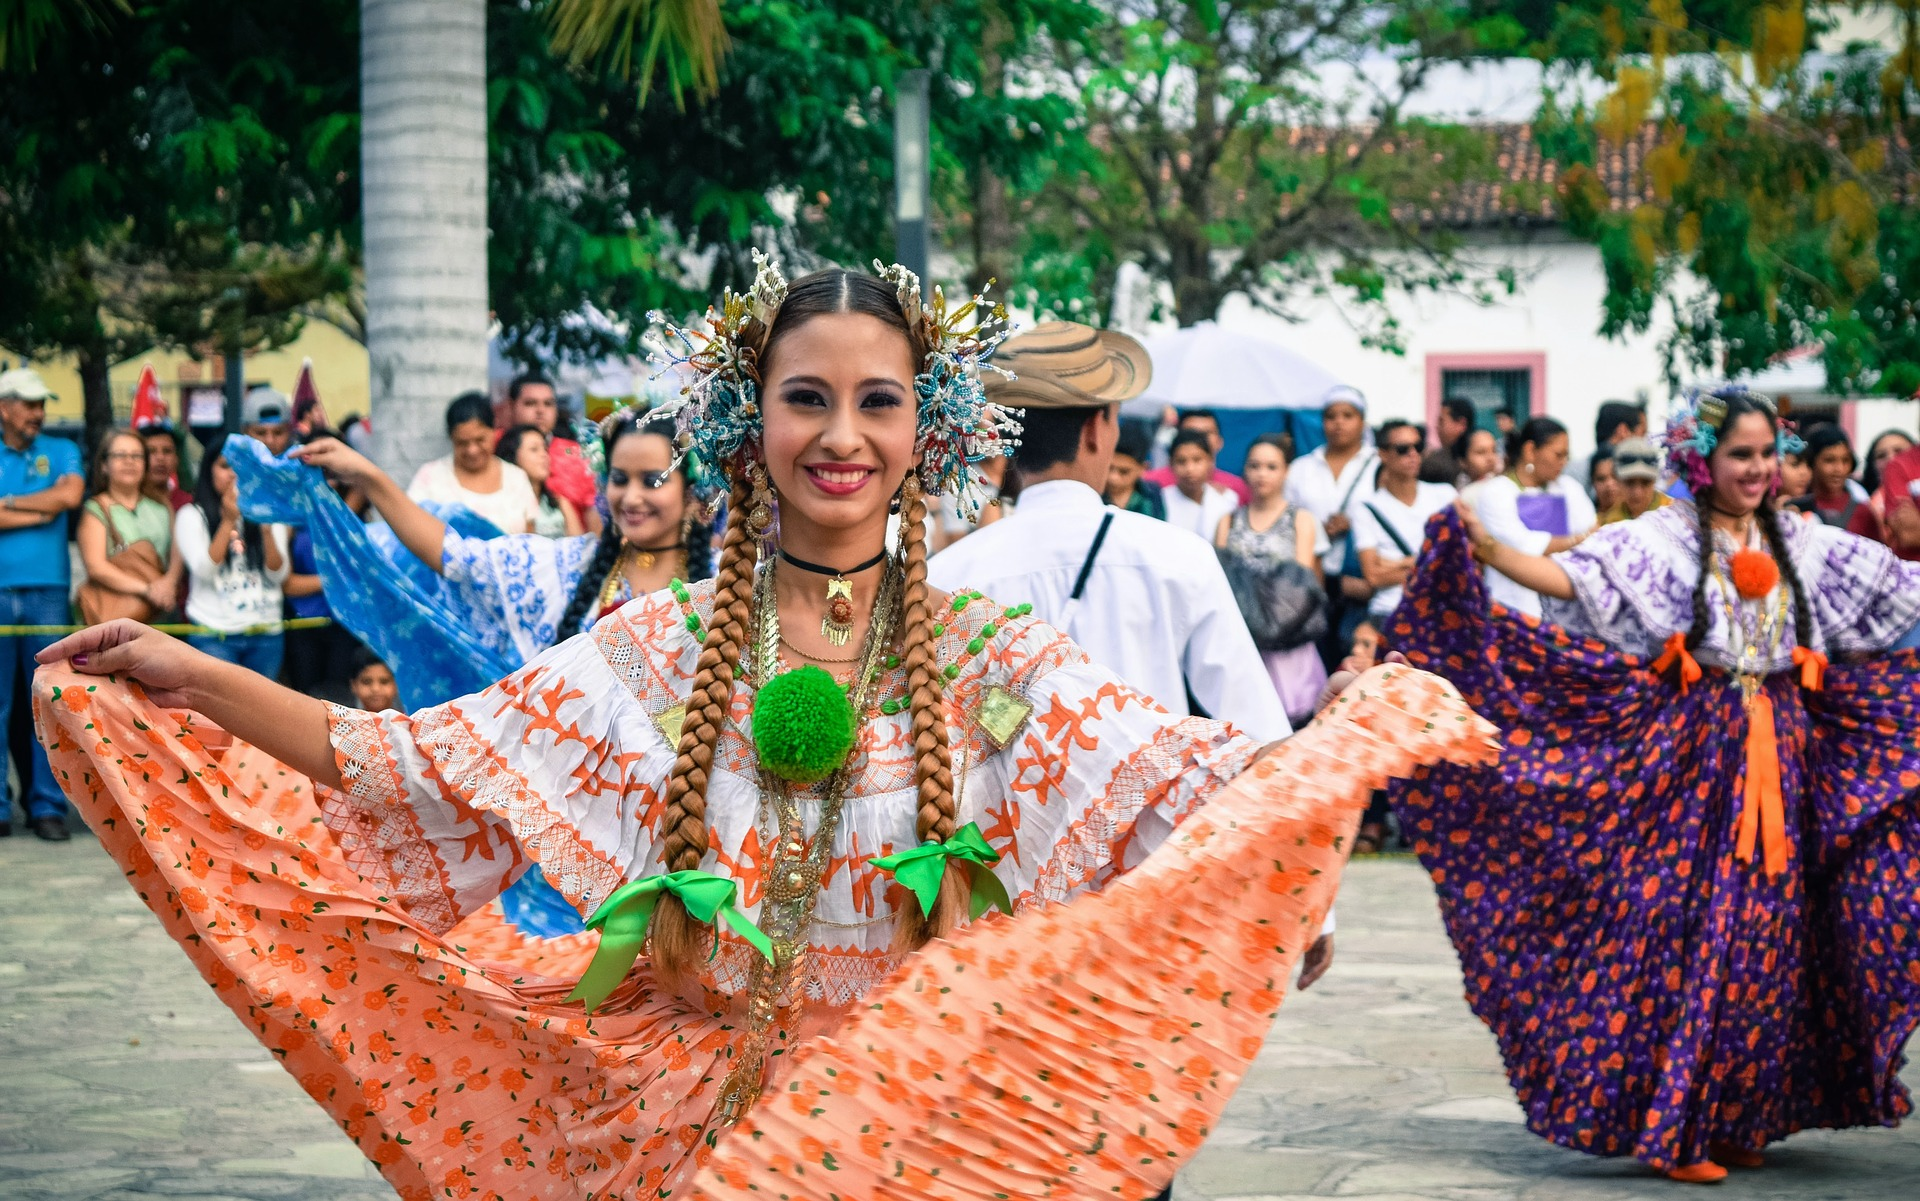 Guanacaste Day typical dress